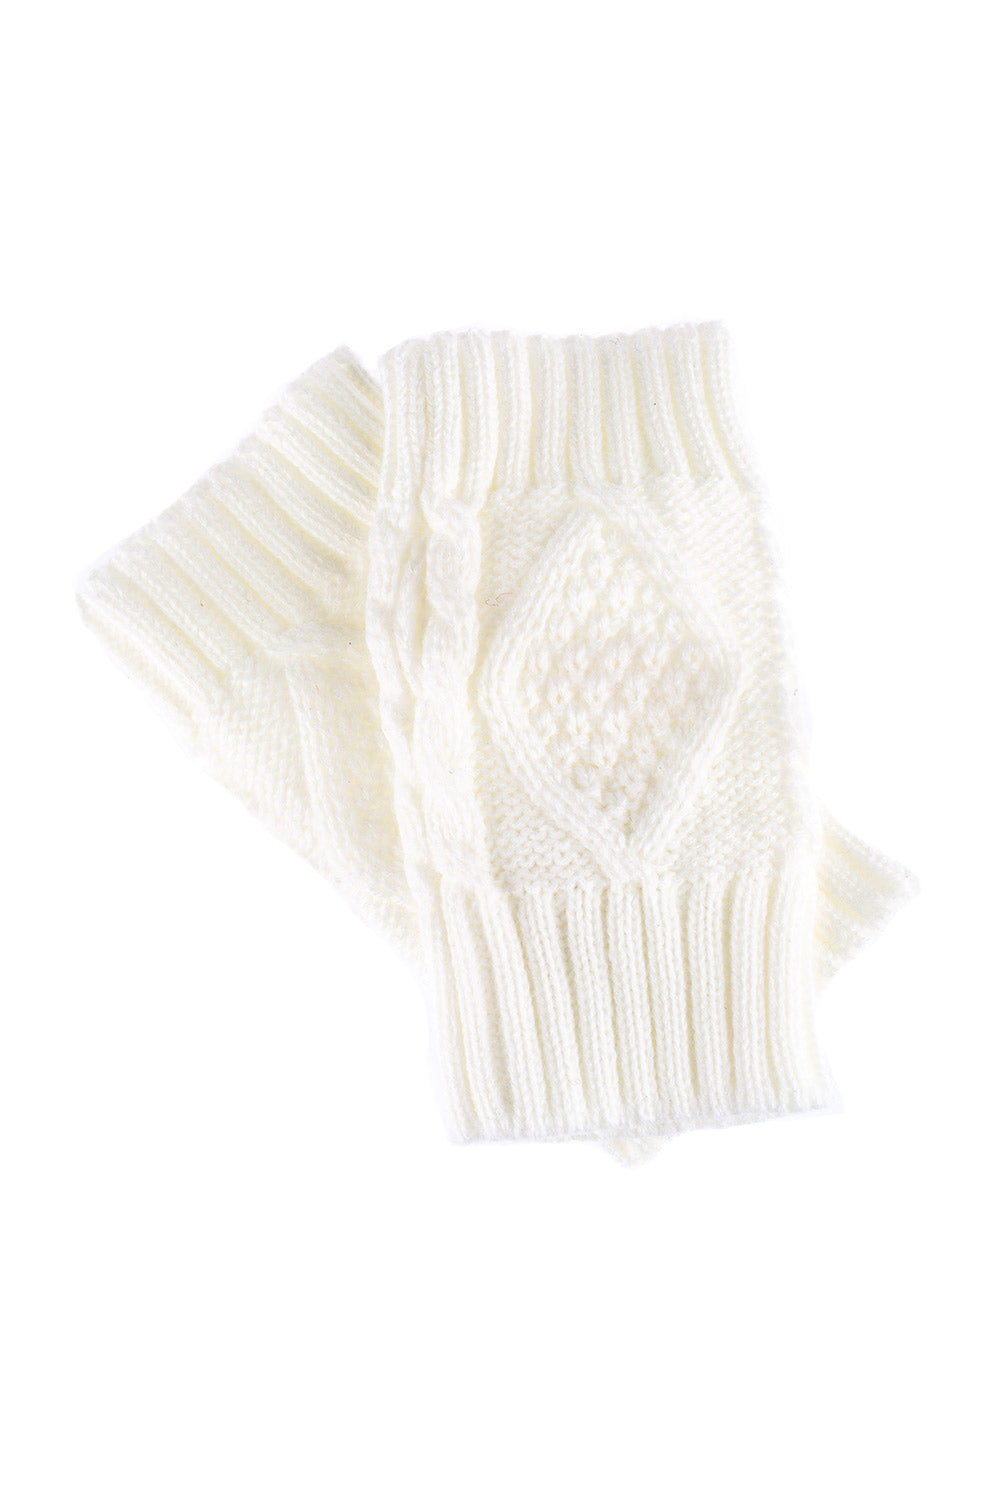 Type 1 Snow Paw Wrist Warmers In Ivory